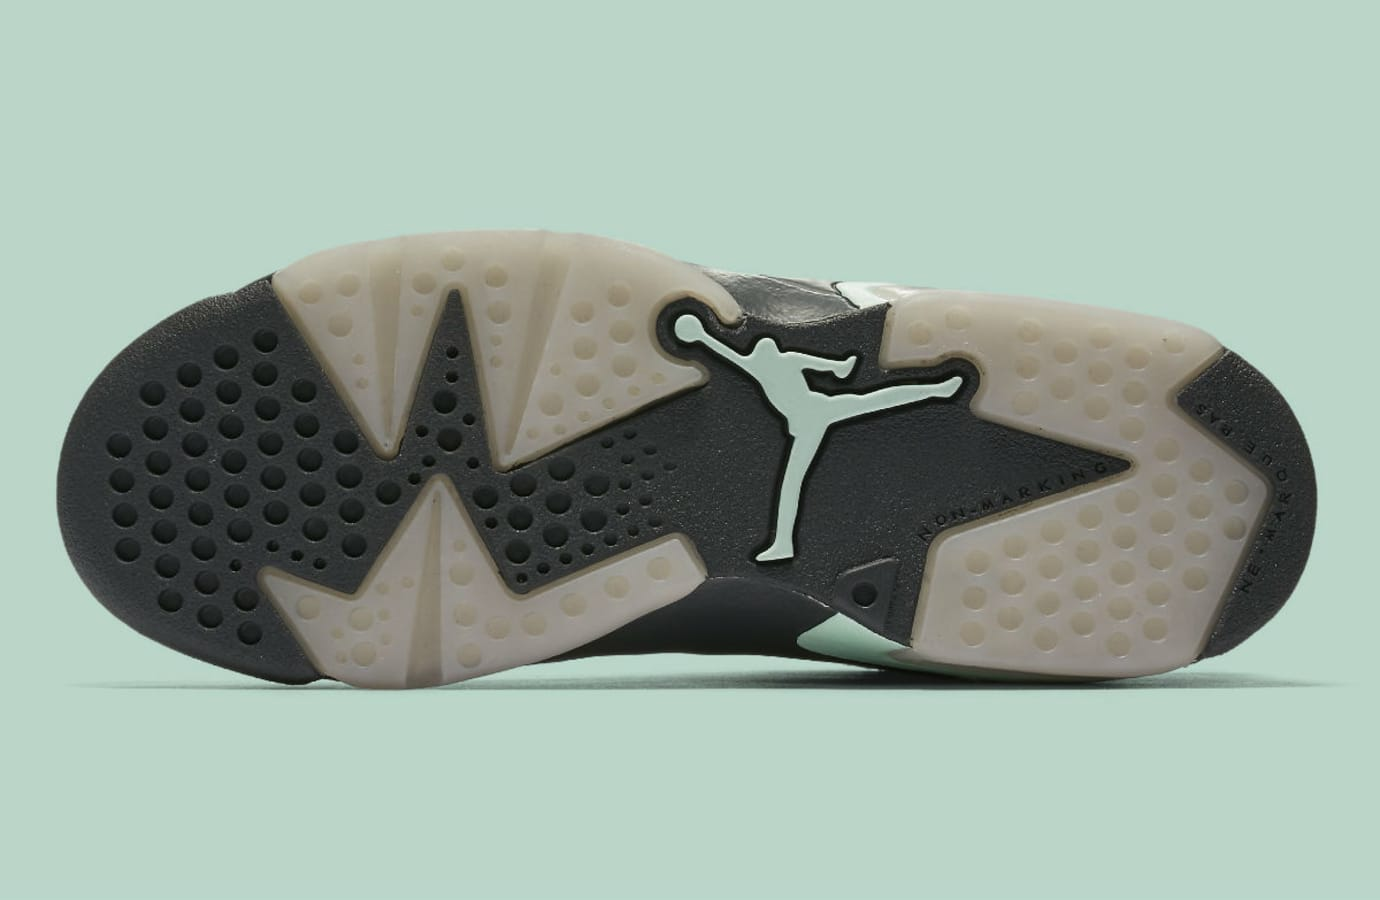 5874130d7b8 Air Jordan 6 Low Mint Foam Release Date Sole 768878-015